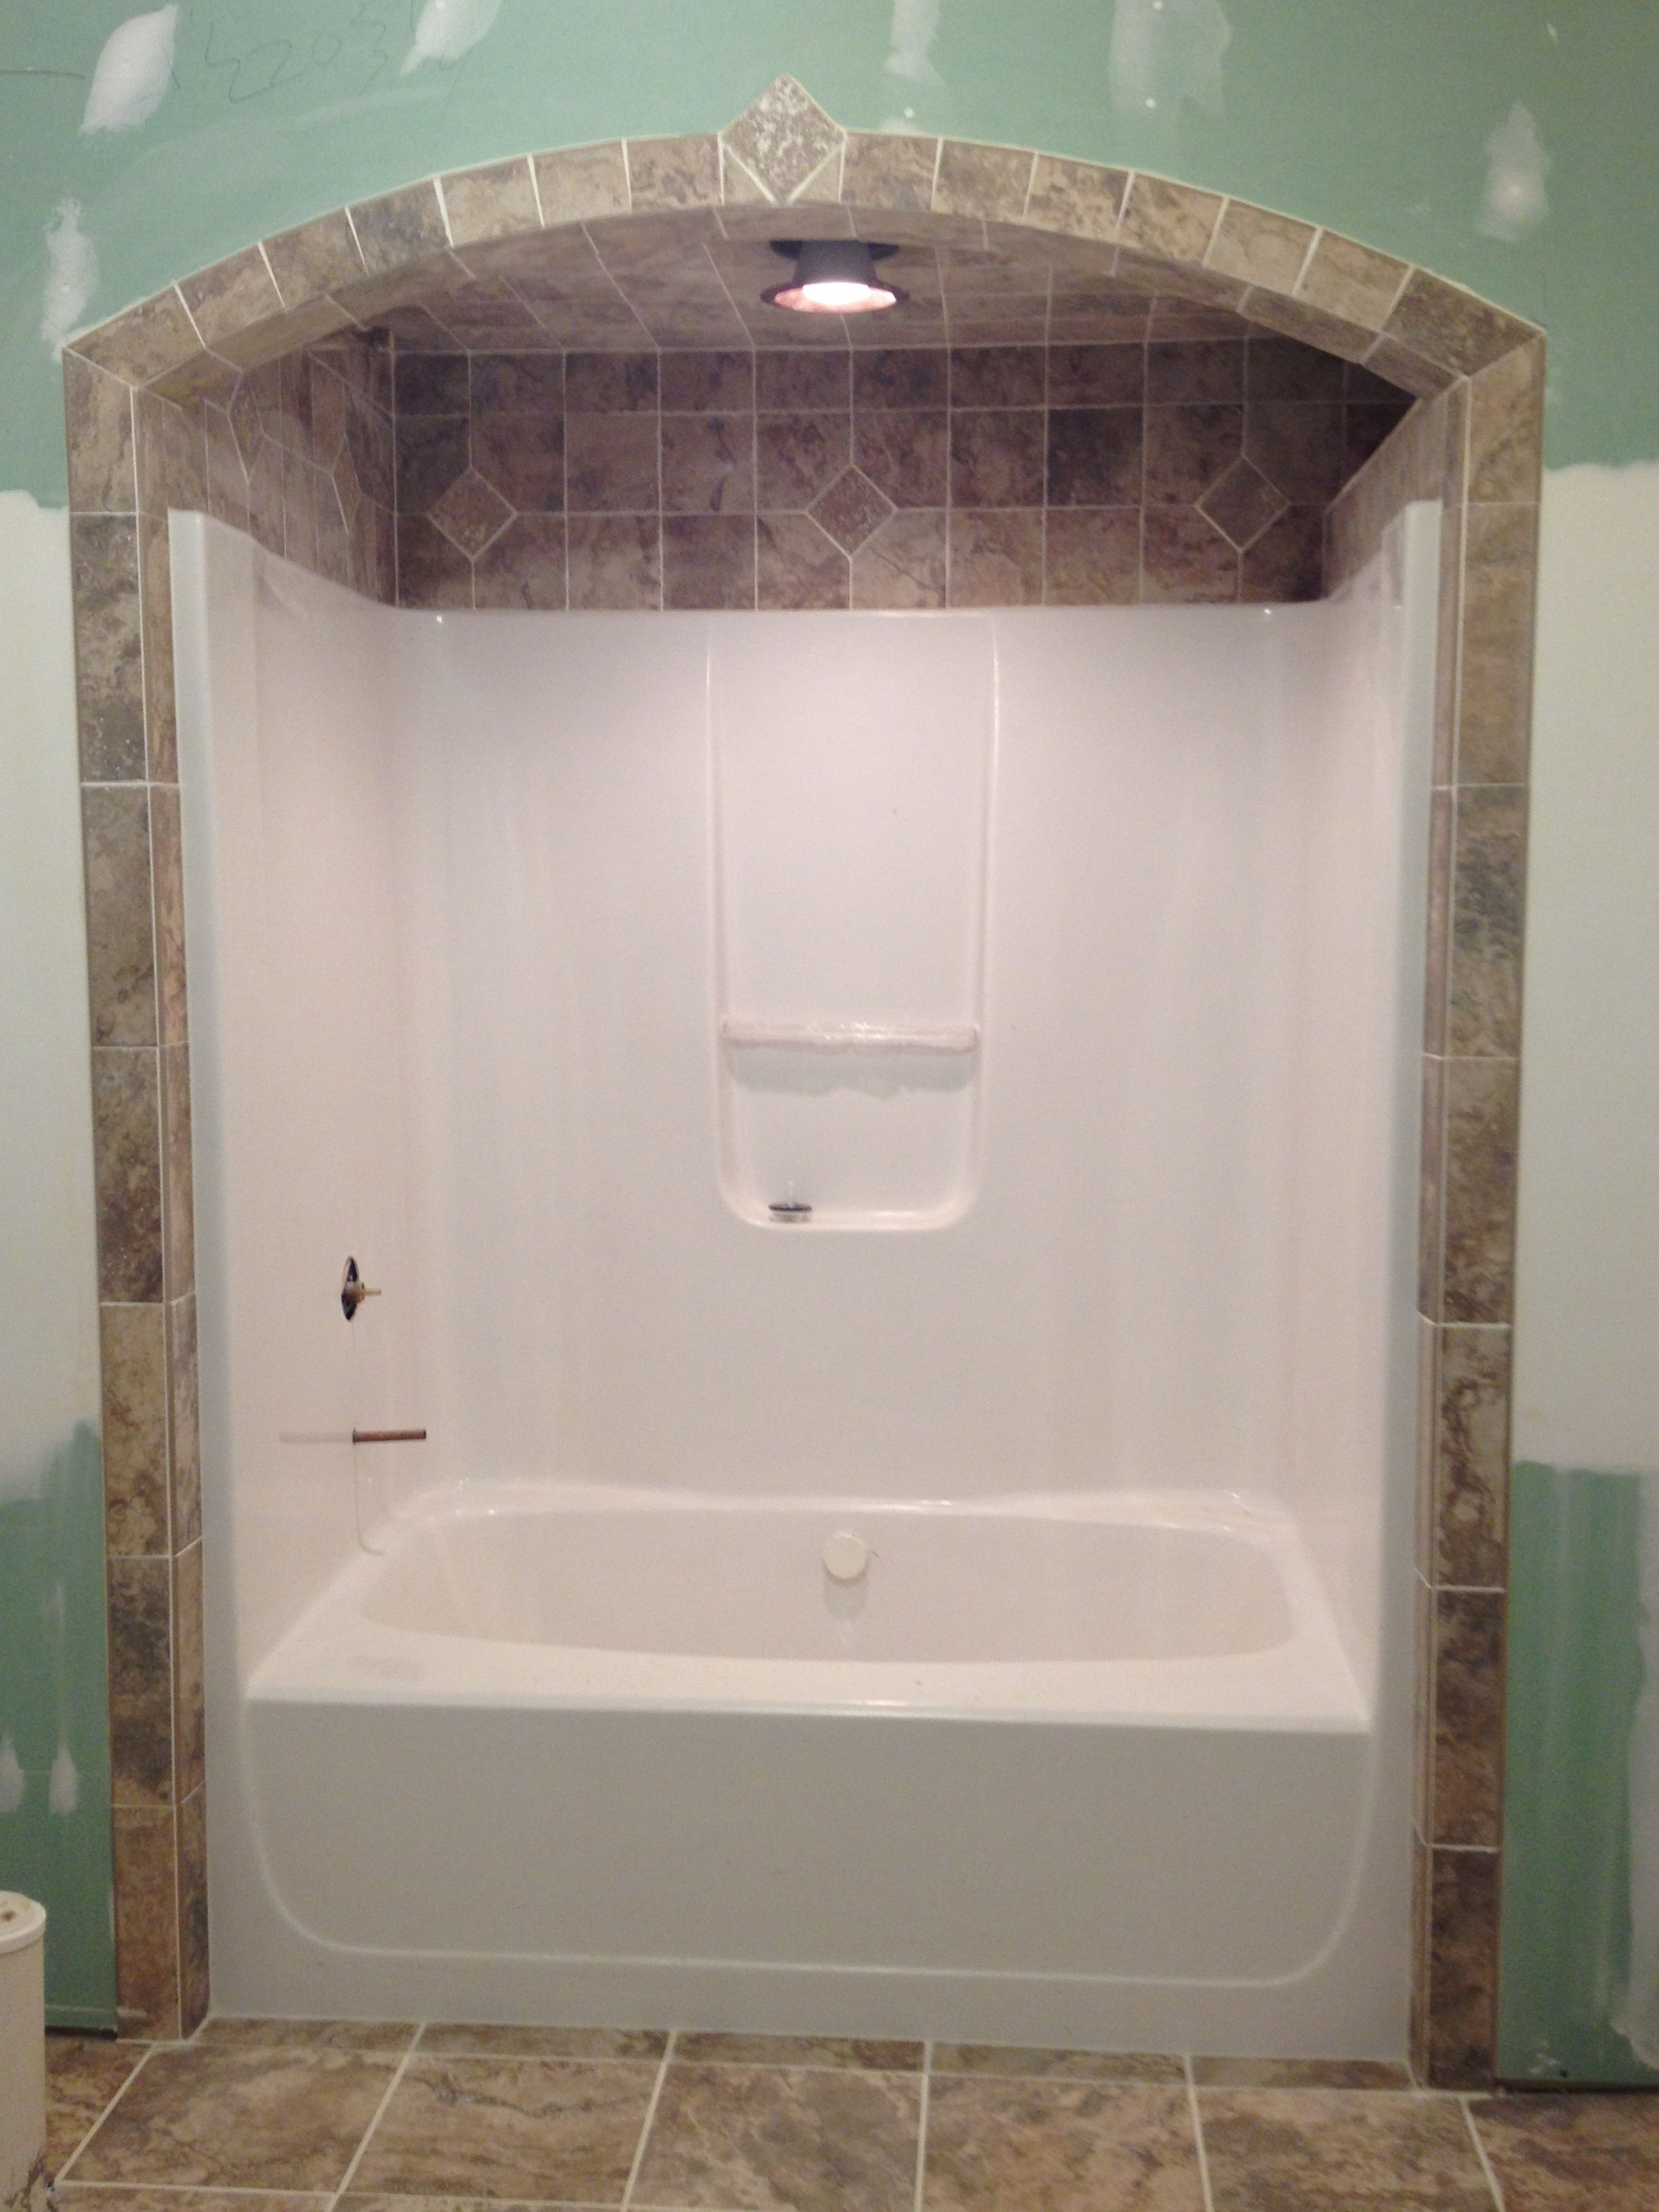 Bathroom Tile Ideas Around Bathtub bathtub tile like the idea of tile around and above shower/tub